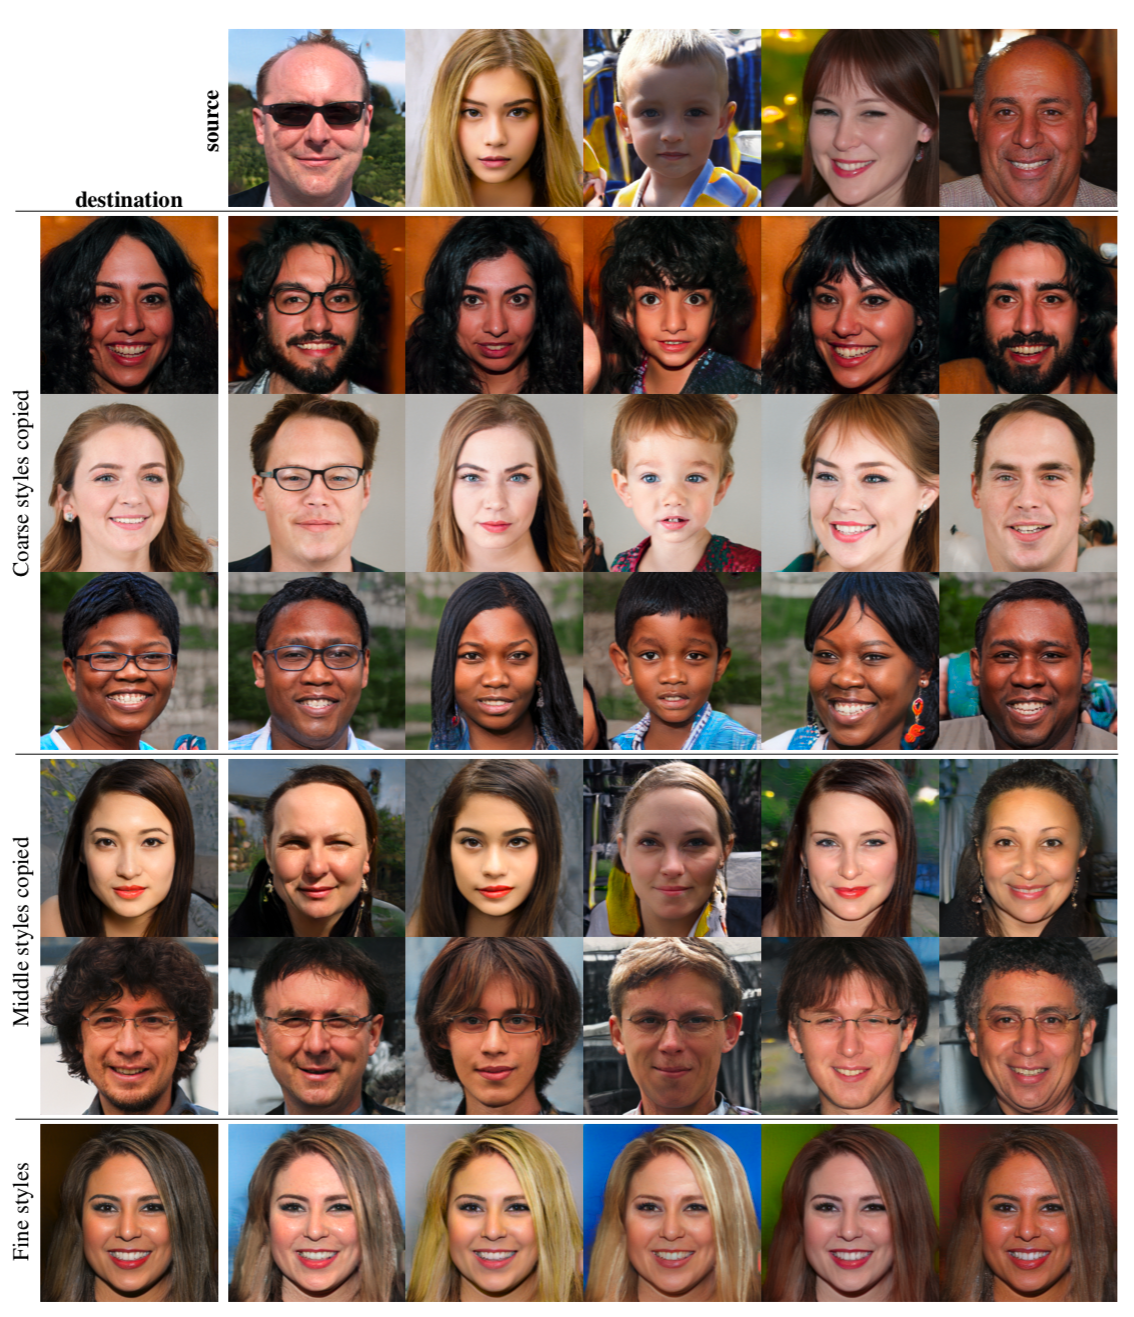 Synthetic faces generated by the latest research work: A Style-Based Generator Architecture for Generative Adversarial Networks by Karras et al. from Nvidia